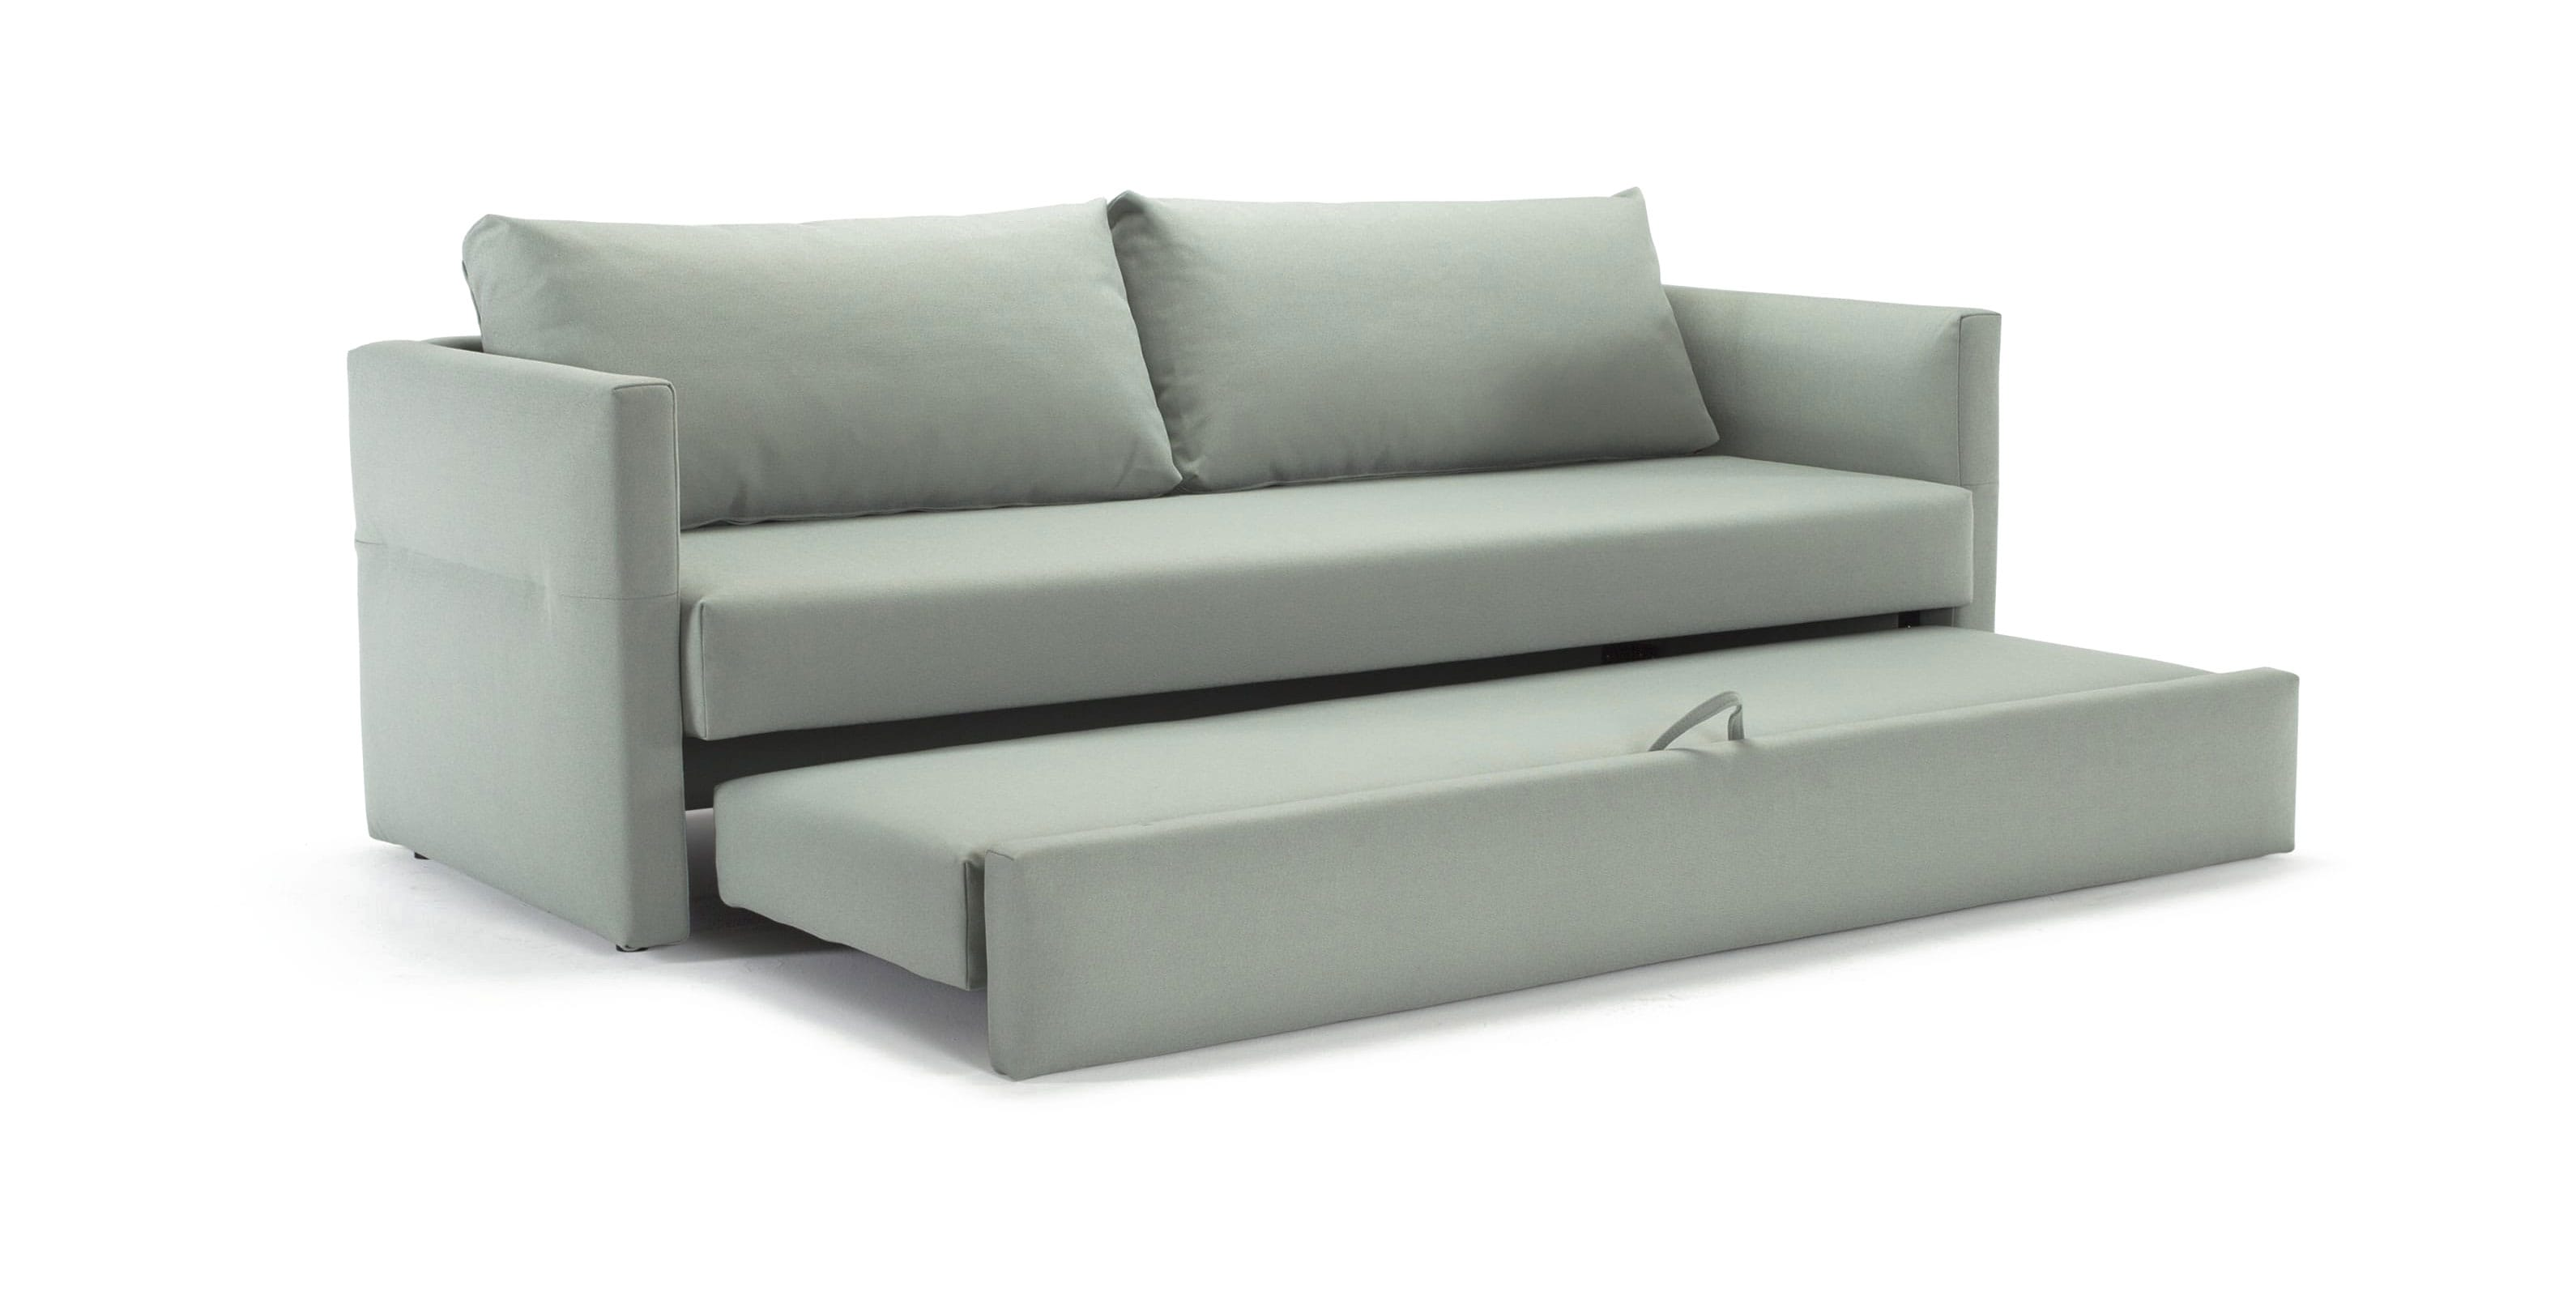 Toke Sofa Bed (Full Size) Coastal Nordic Sky by Innovation